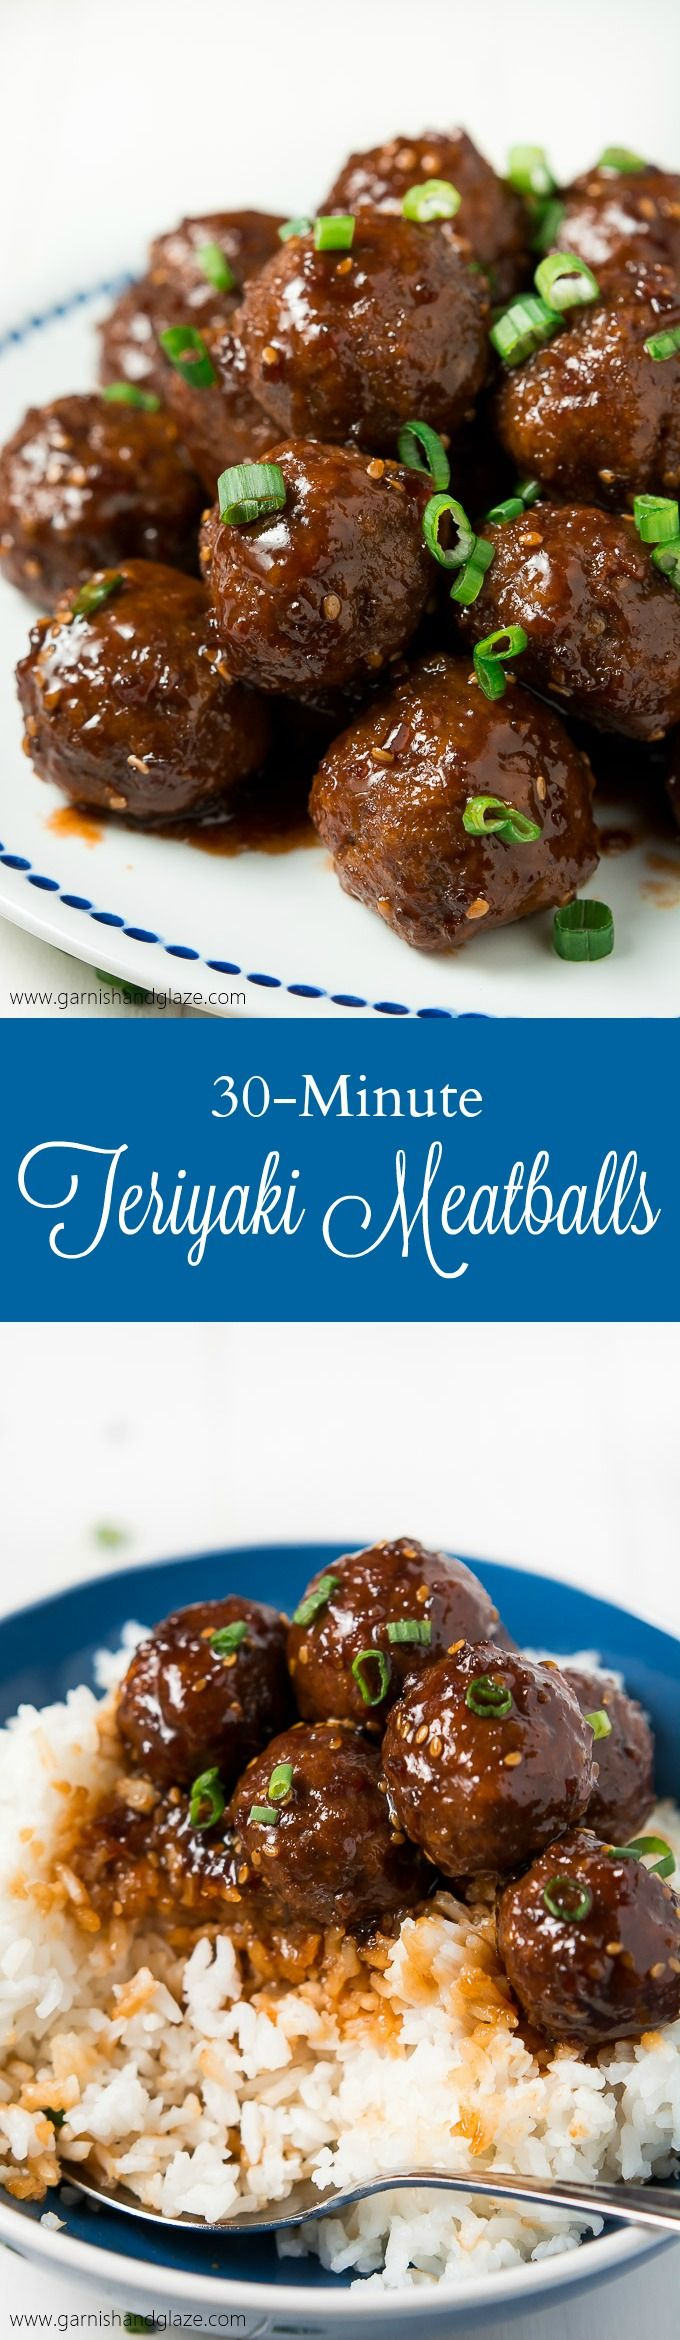 Party it up this holiday season and celebrate Chrismukkah with these simple, tender and juicy 30 Minute Teriyaki Meatballs! #unlocktheawesome #ad @Soy Vay